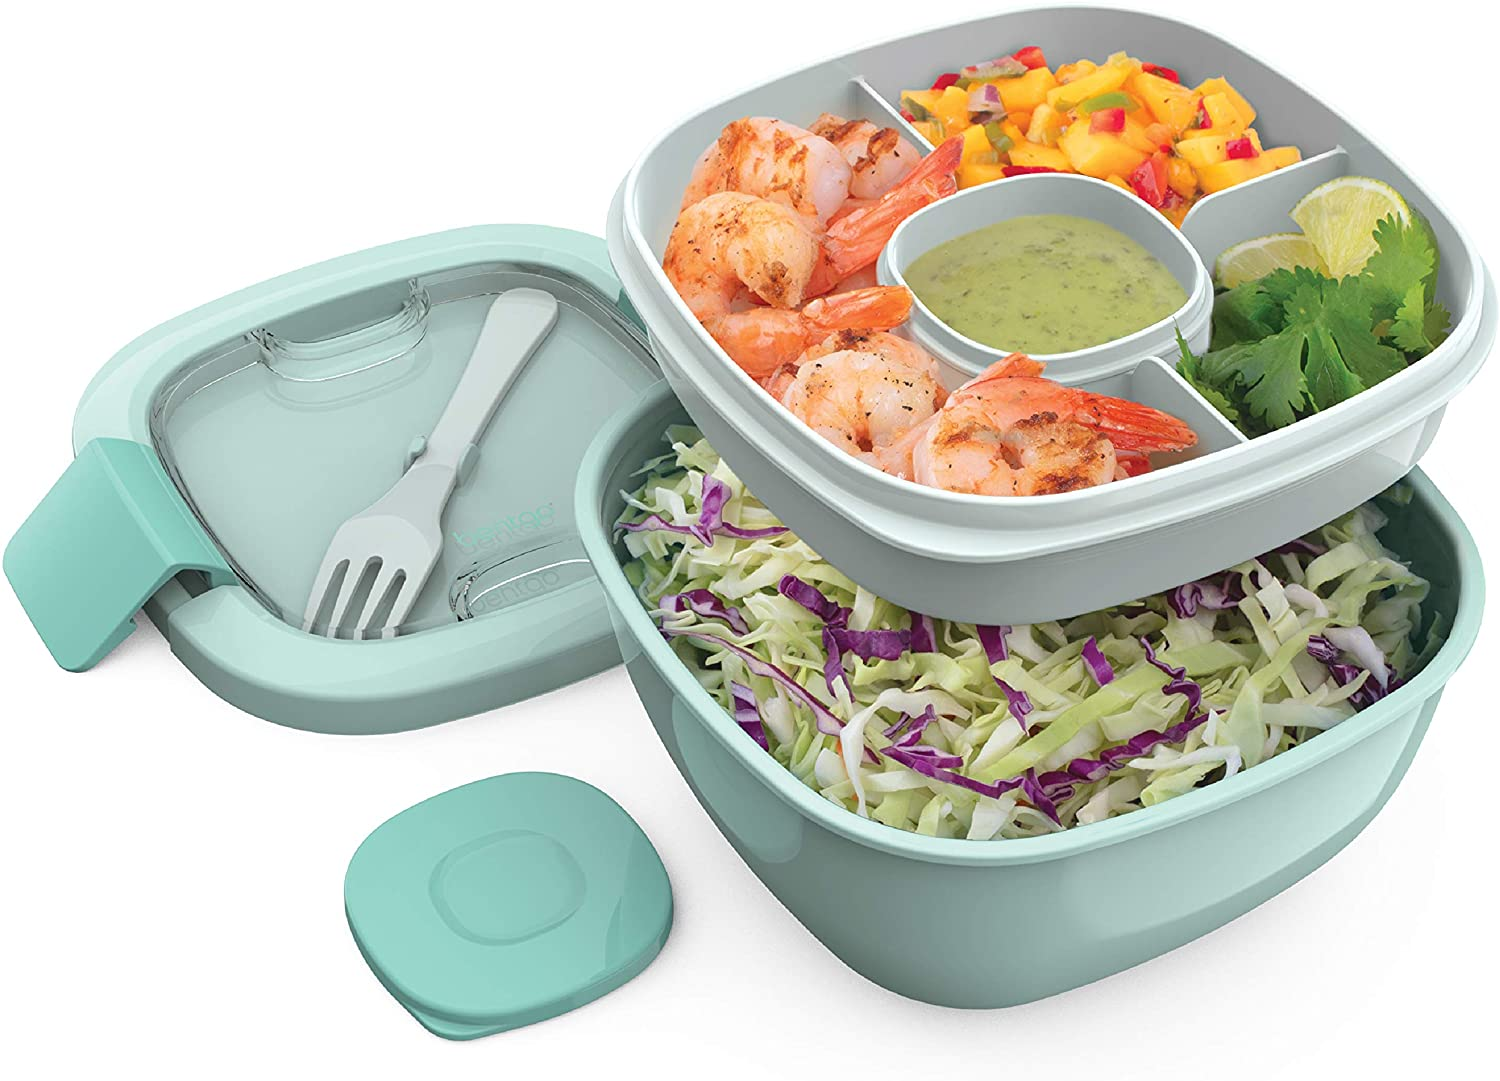 Bentgo Salad BPA-Free Lunch Container with Large 54-oz Bowl, 4-Compartment Bento-Style Tray for Salad Toppings and Snacks, 3-oz Sauce Container for Dressings, and Built-In Reusable Fork (Coastal Aqua)